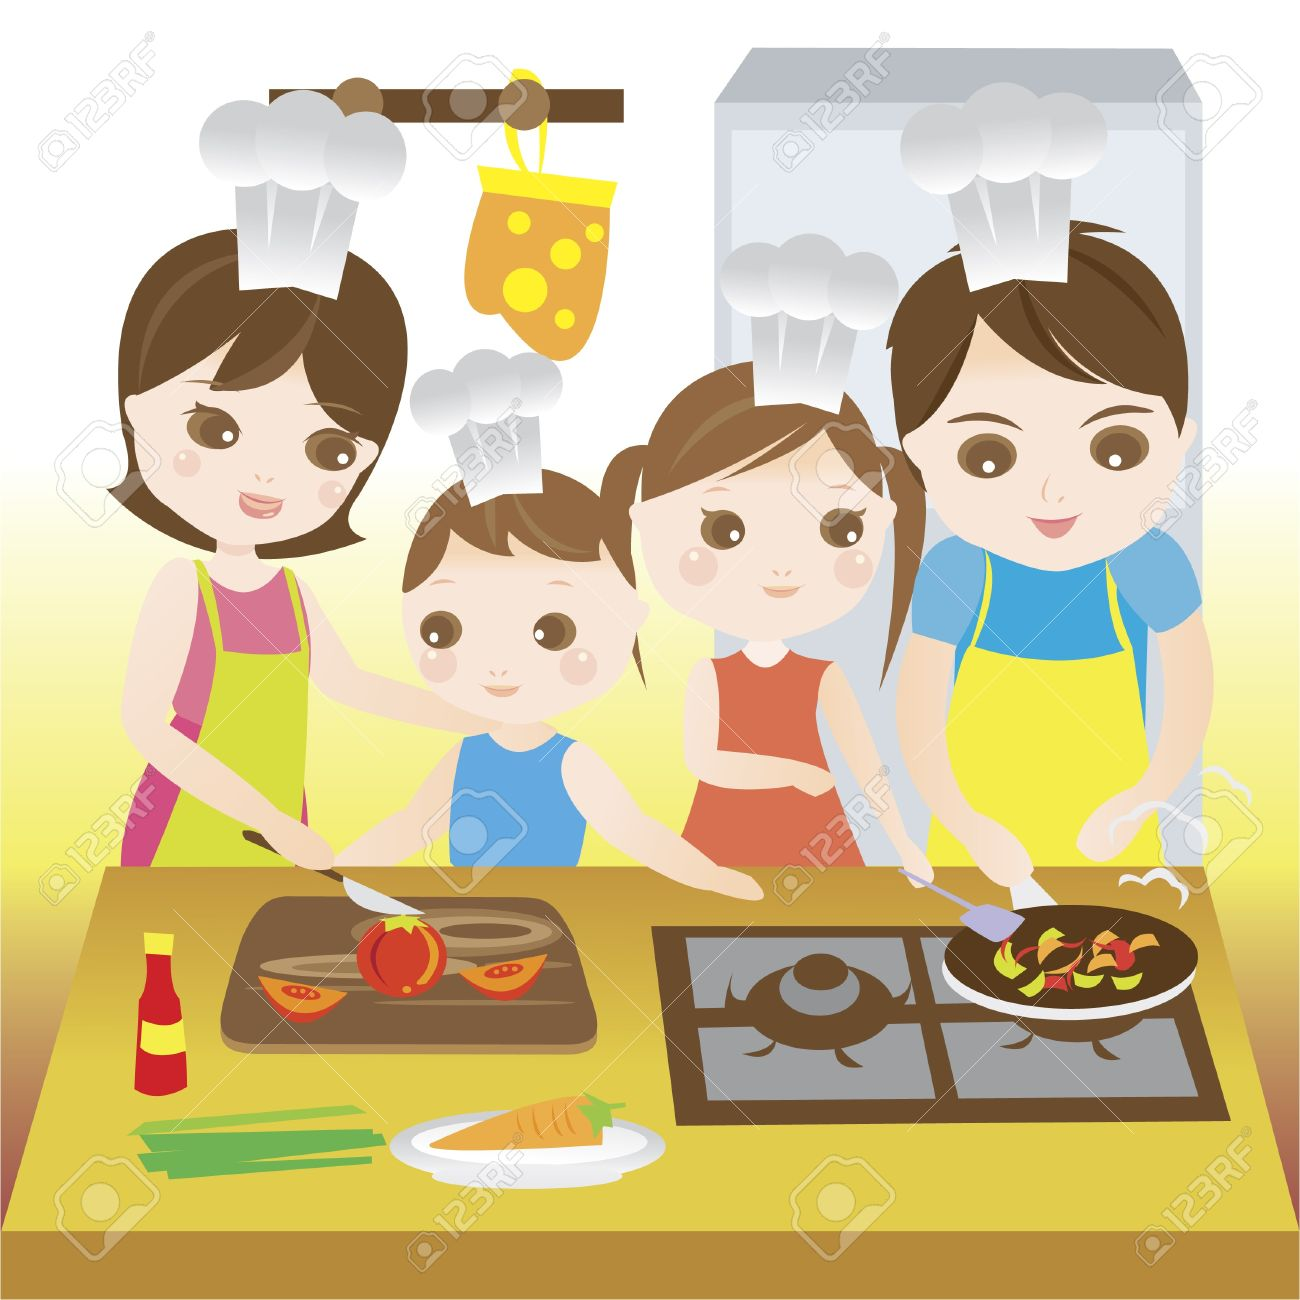 Family cooking together happily.